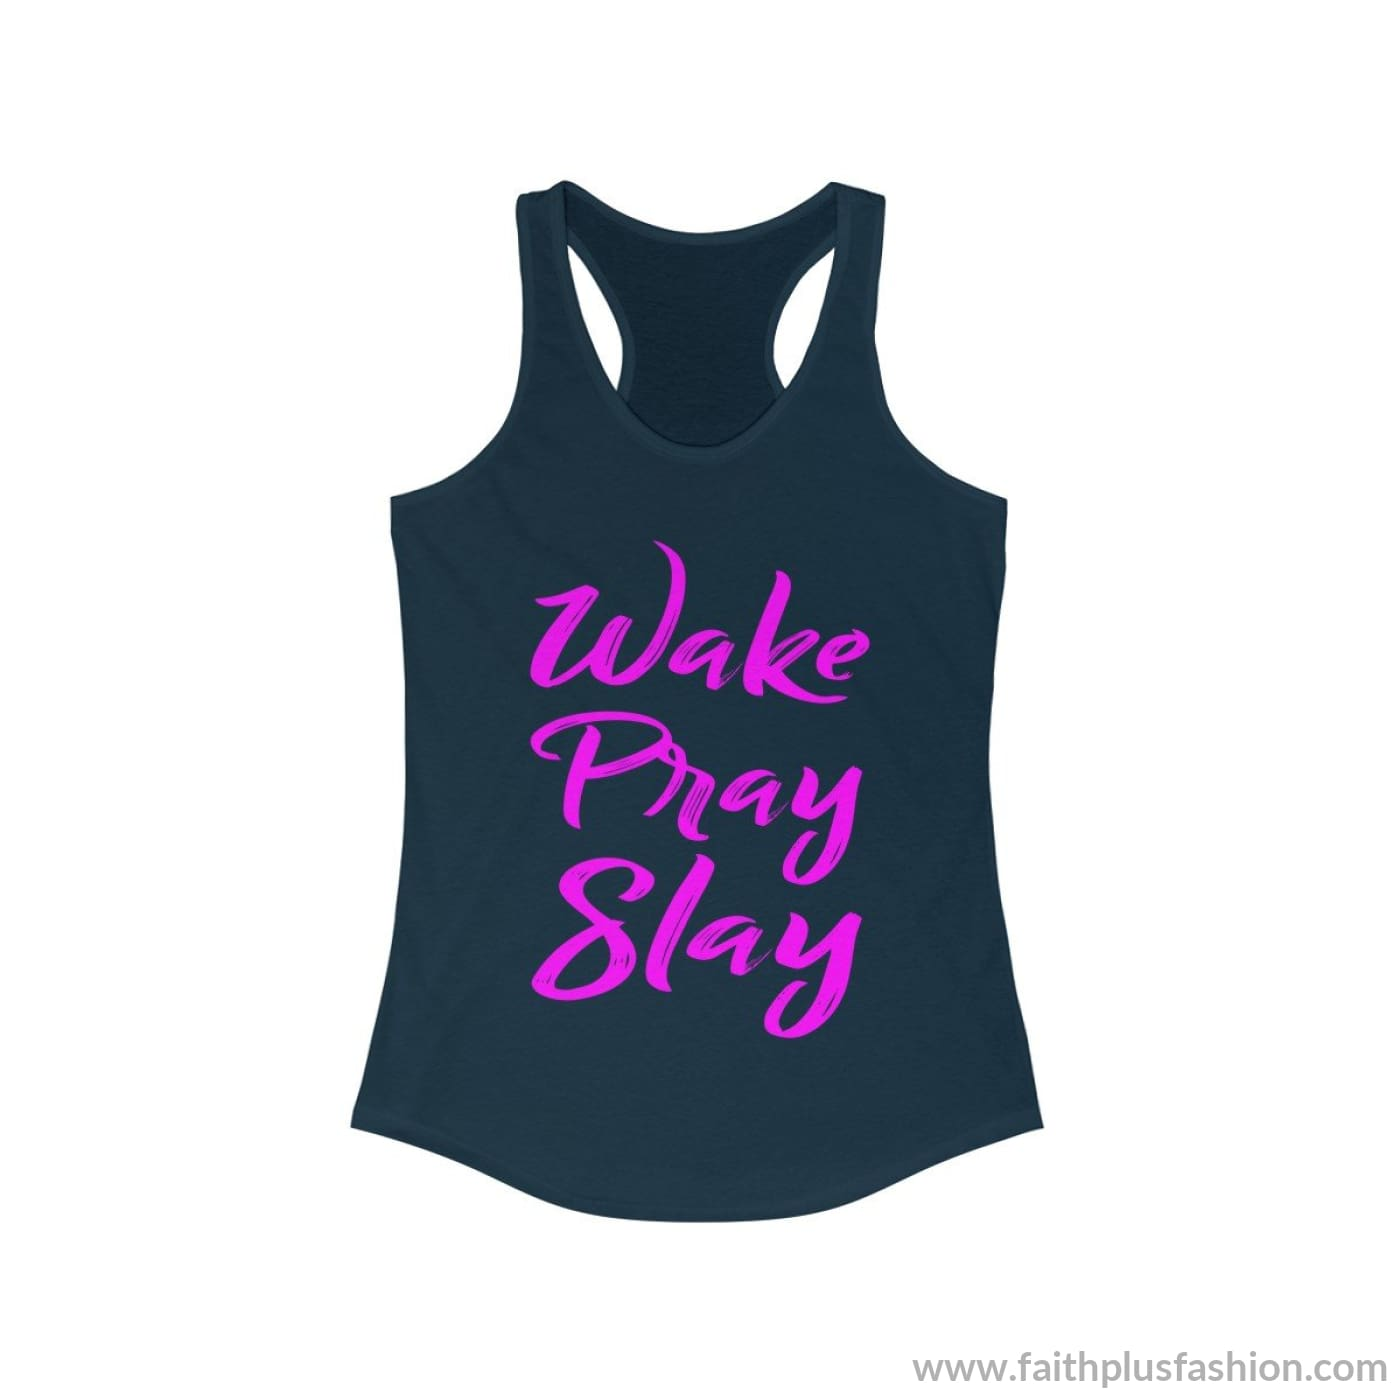 Wake Pray Slay Womens Christian Tank Top - Solid Midnight Navy / L - Tank Top